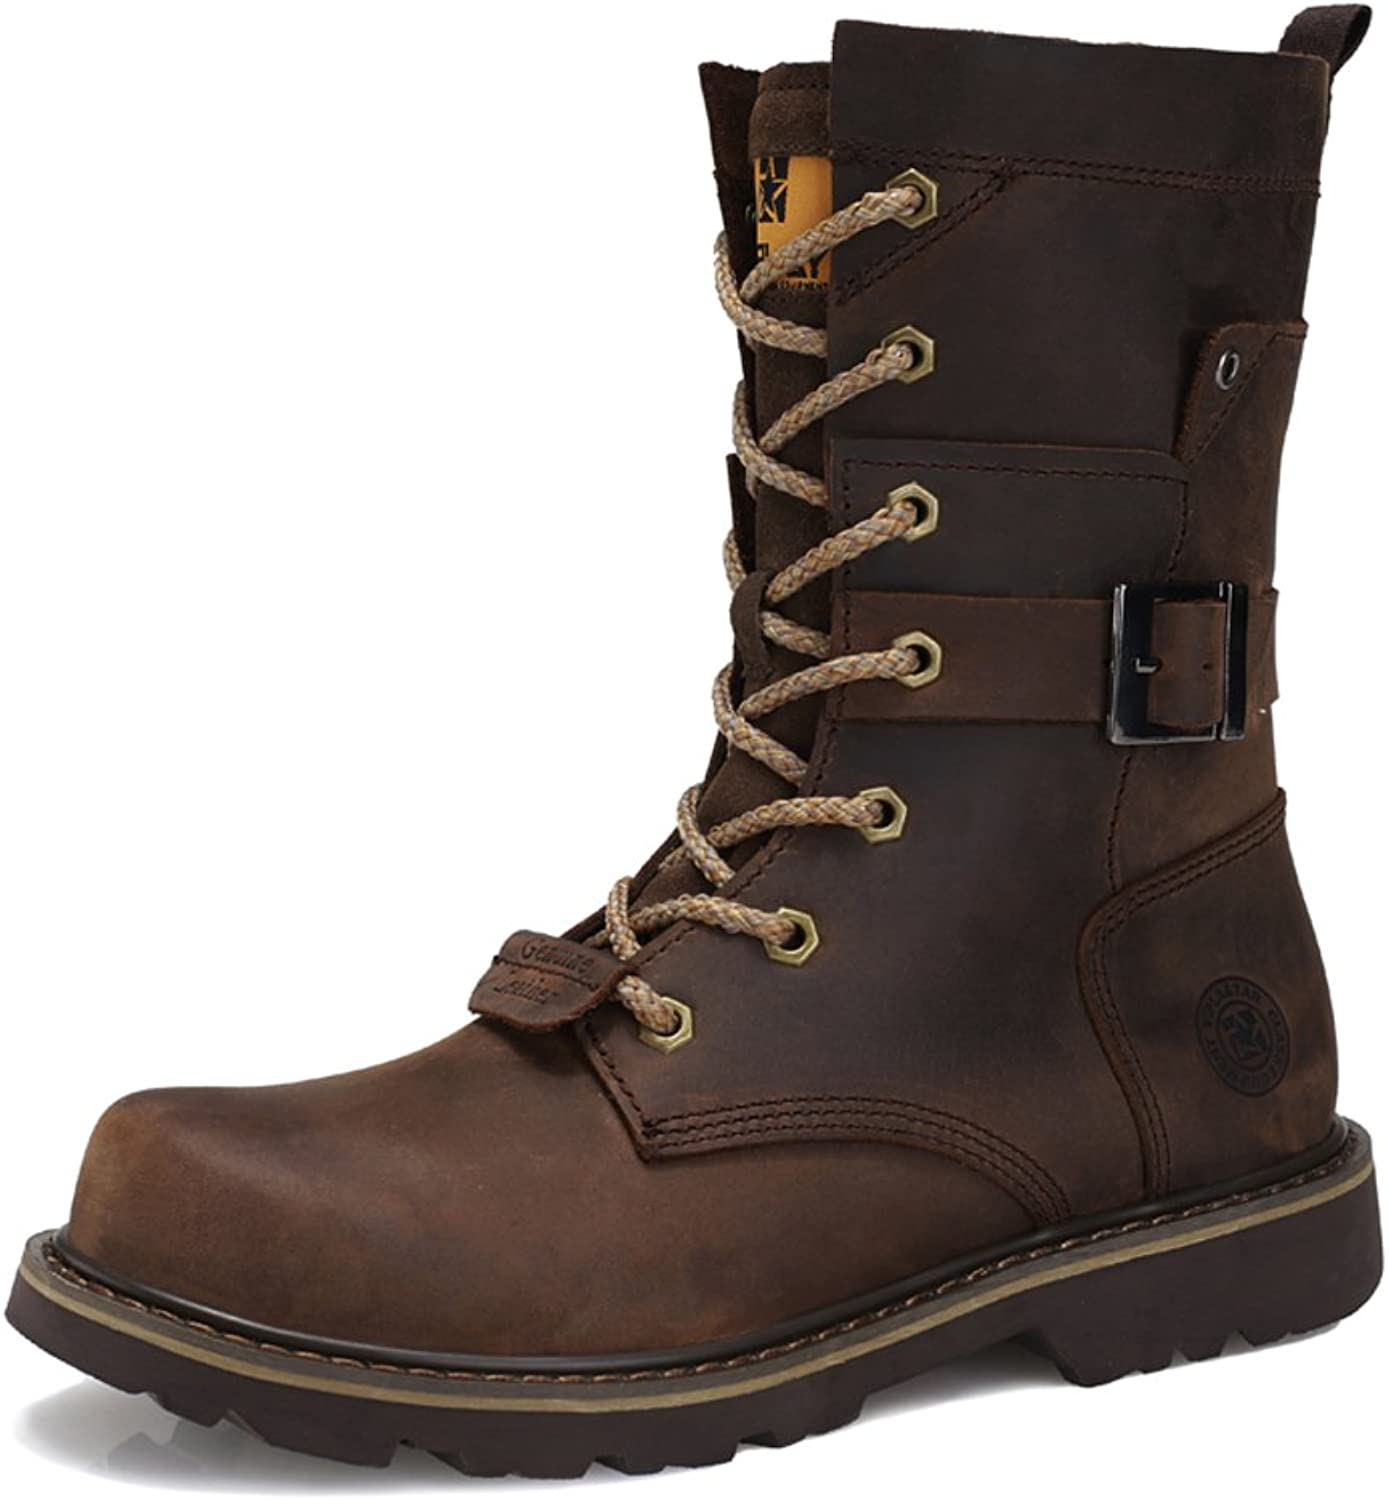 Winter Leather Boots Men's Boots Martin